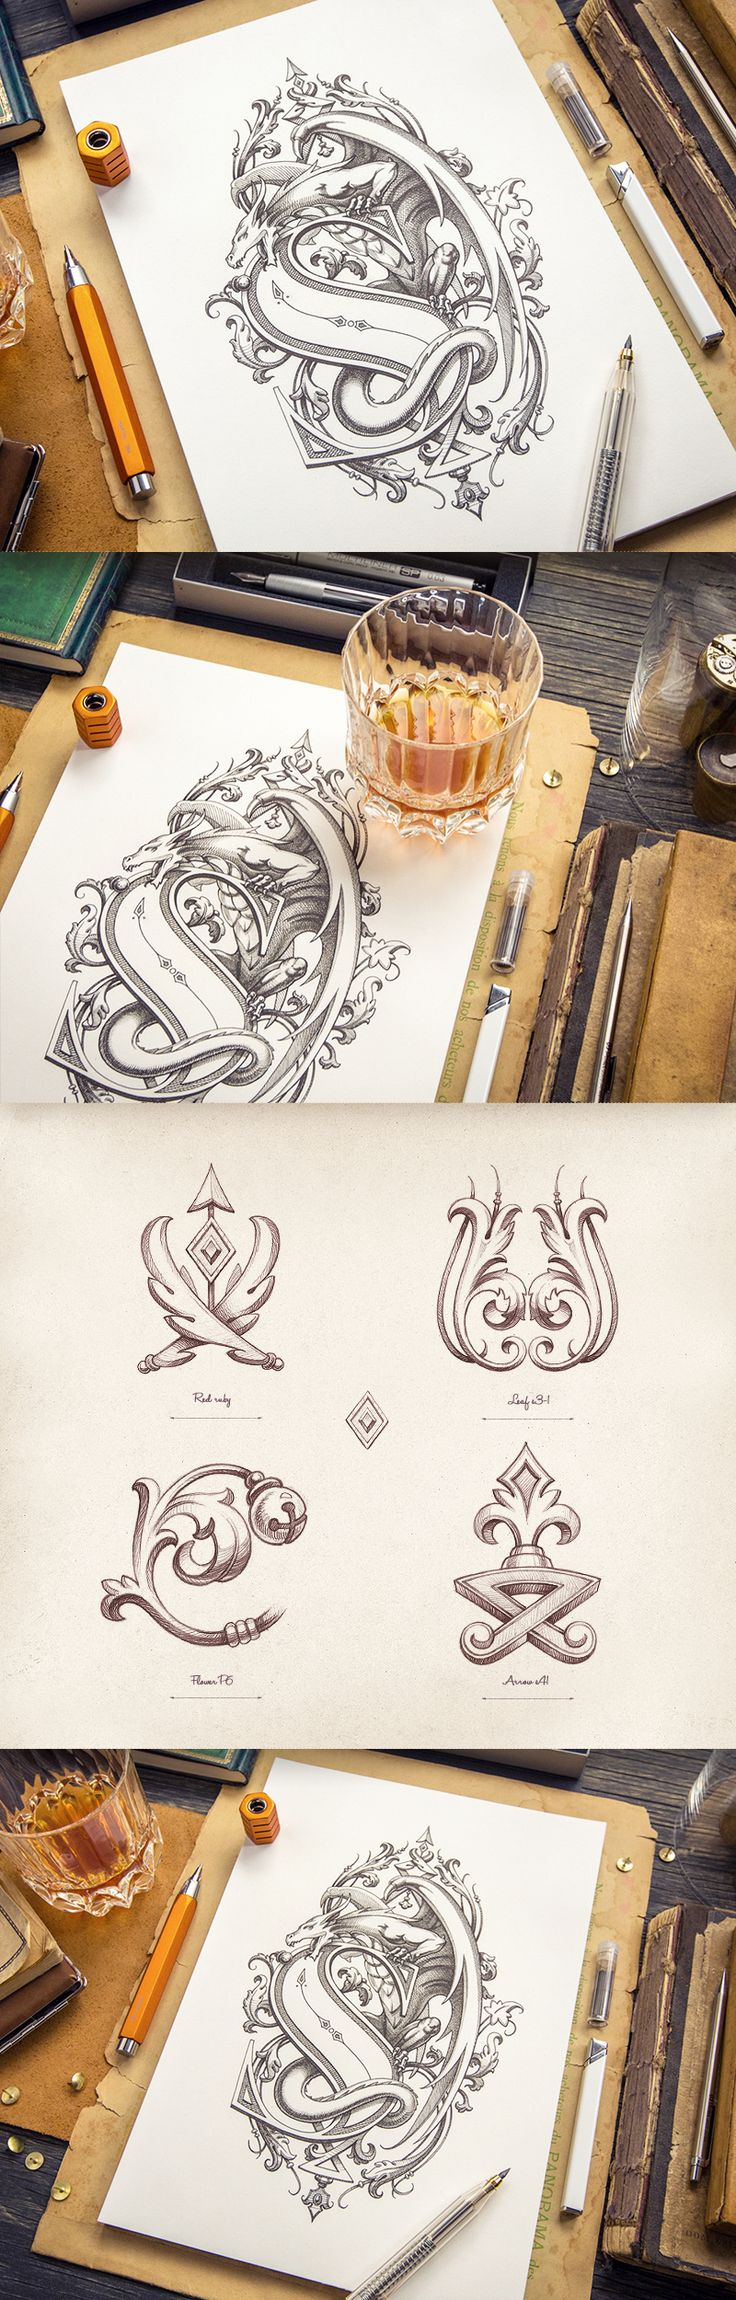 Gorgeous! Heraldry shows little designs that went into final product